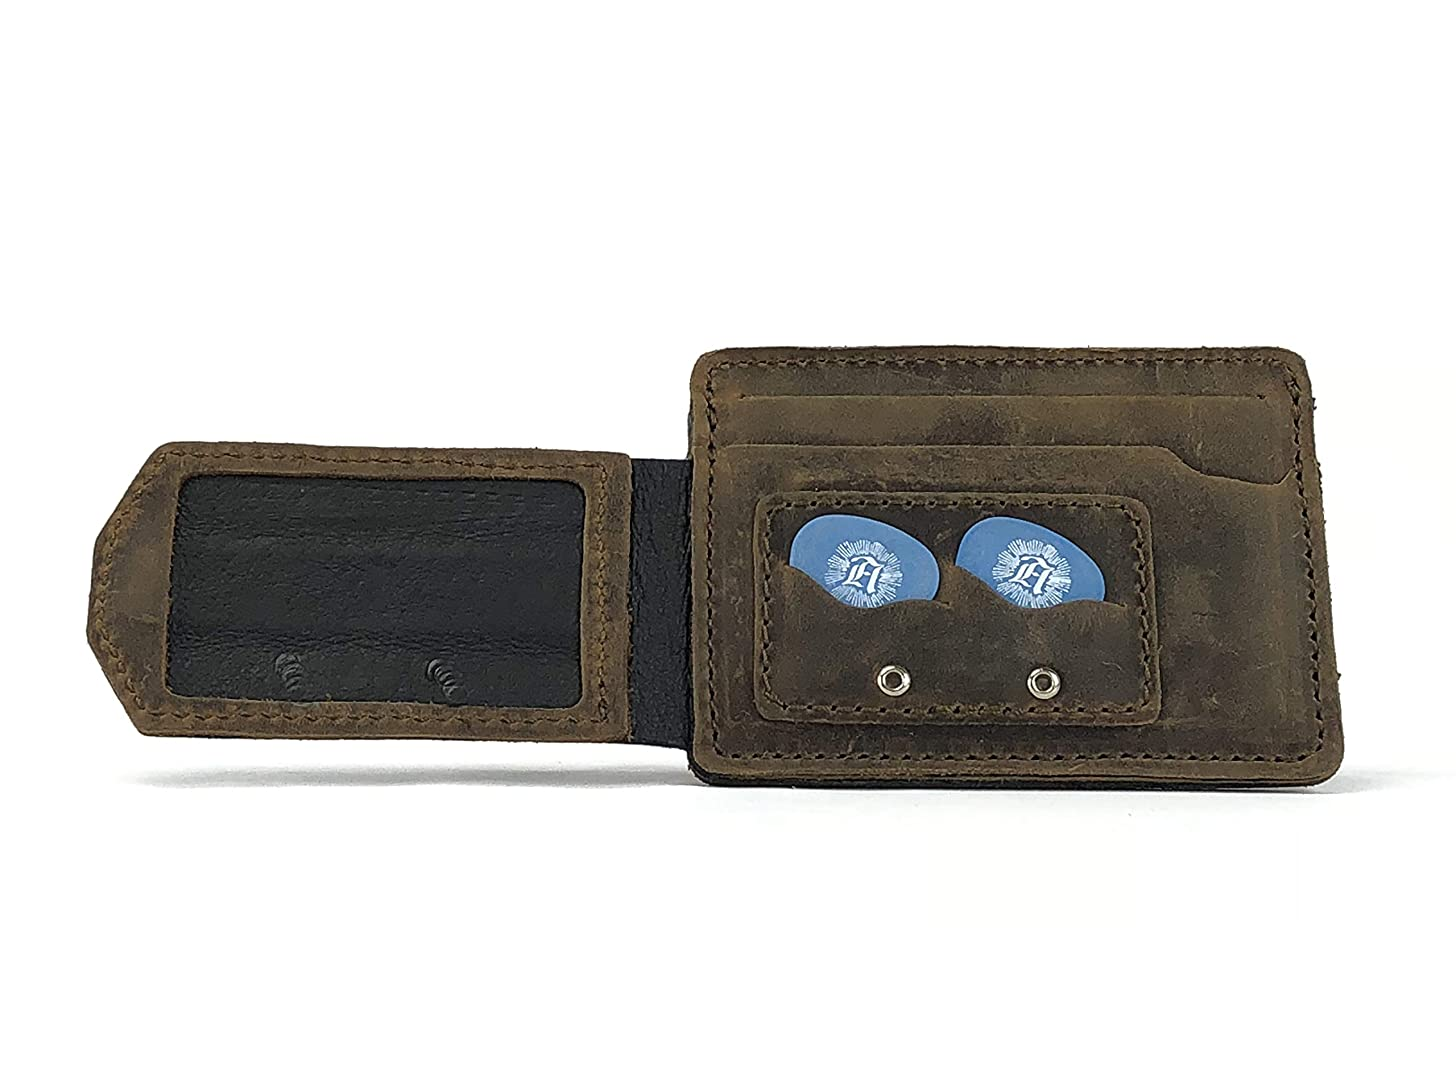 Anthology Gear Compact Full Grain Leather Wallet with Guitar Pick Holder (Whiskey Brown)